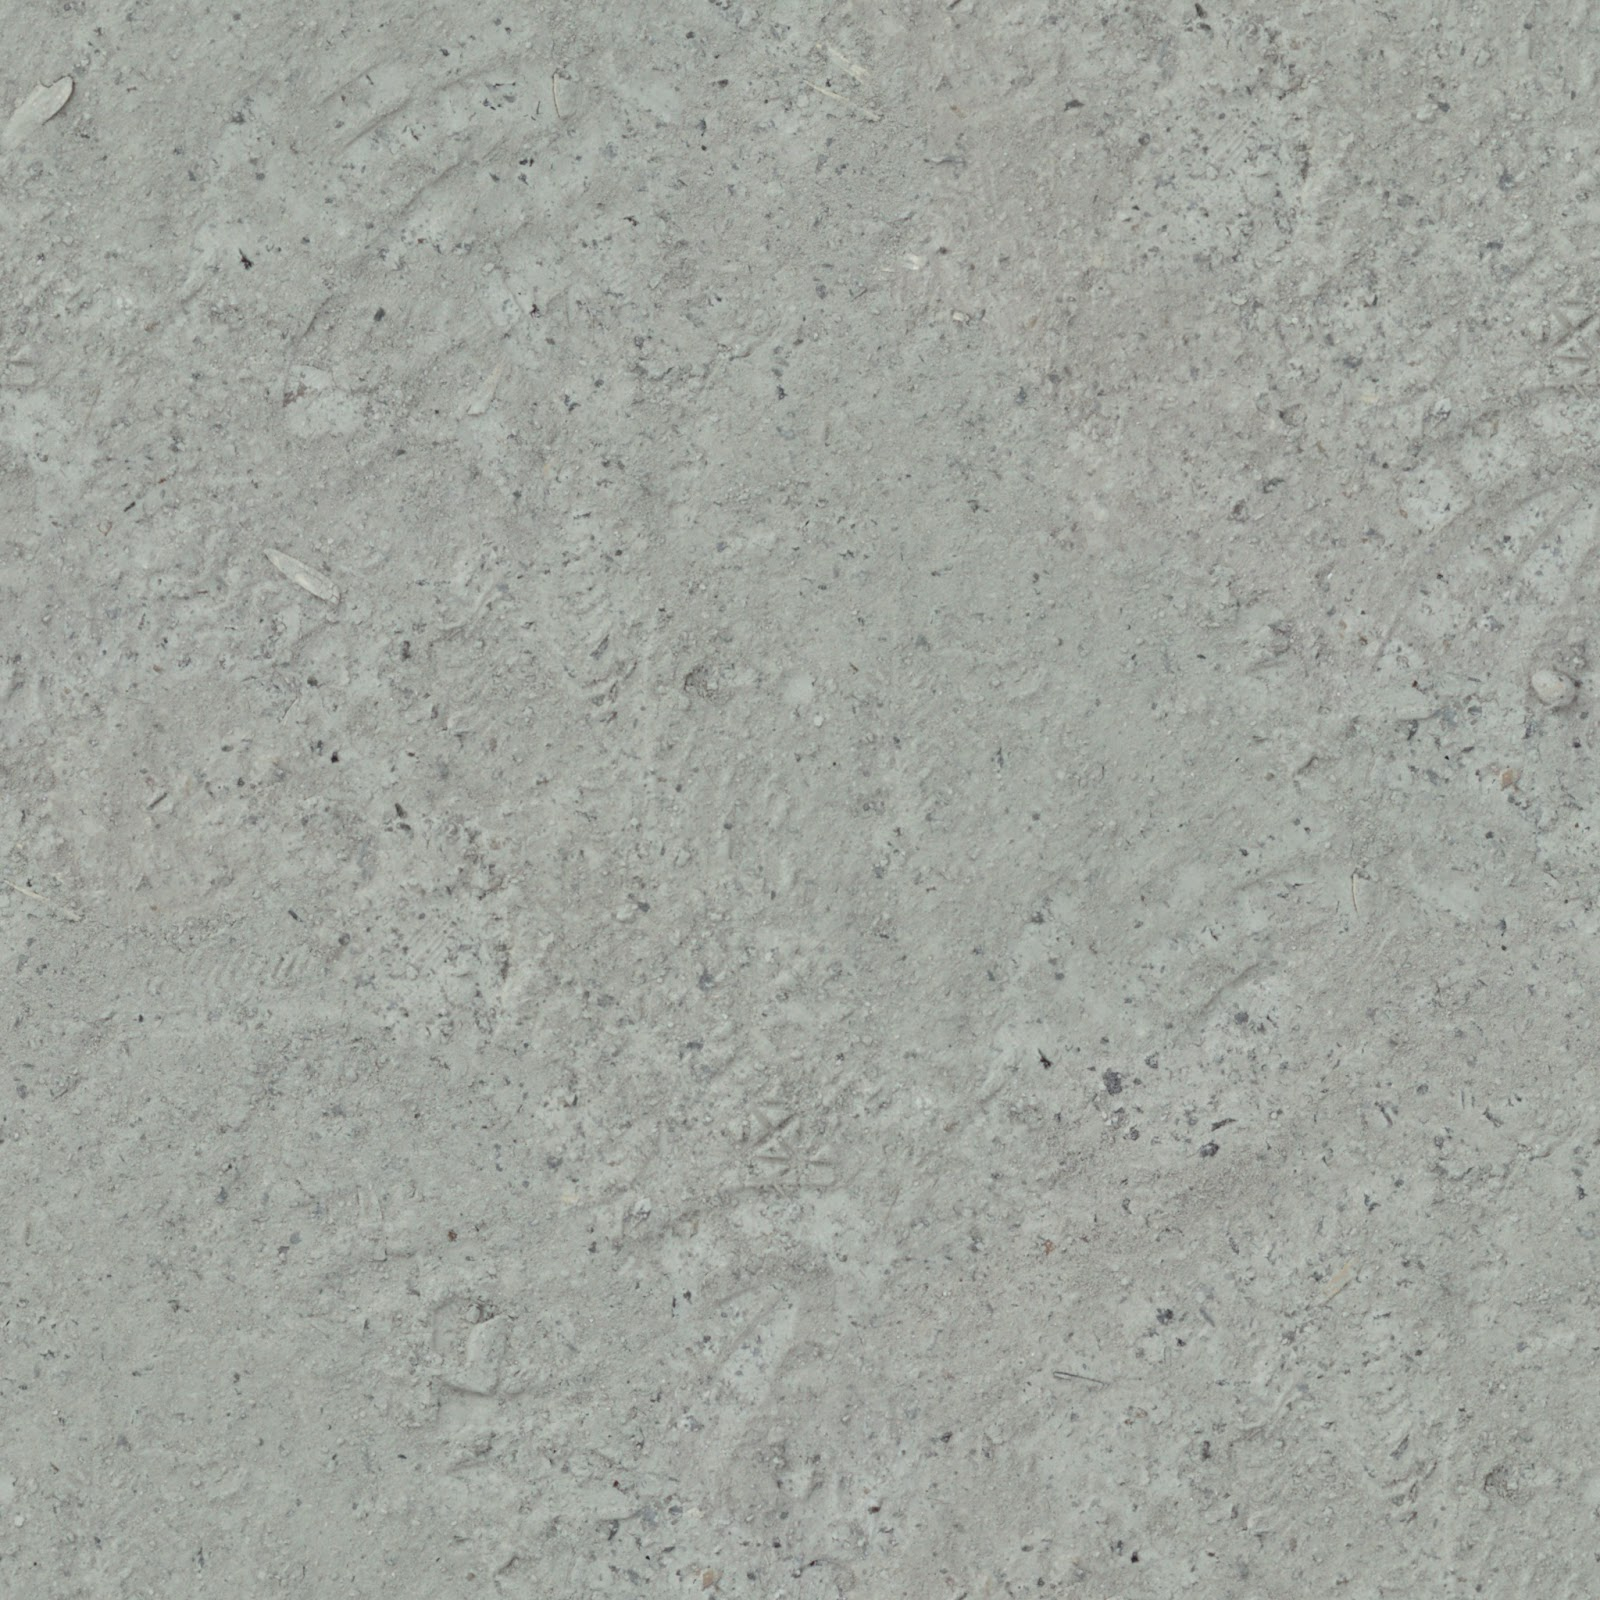 (CONCRETE 18) dusty floor granite seamless texture 2048x2048